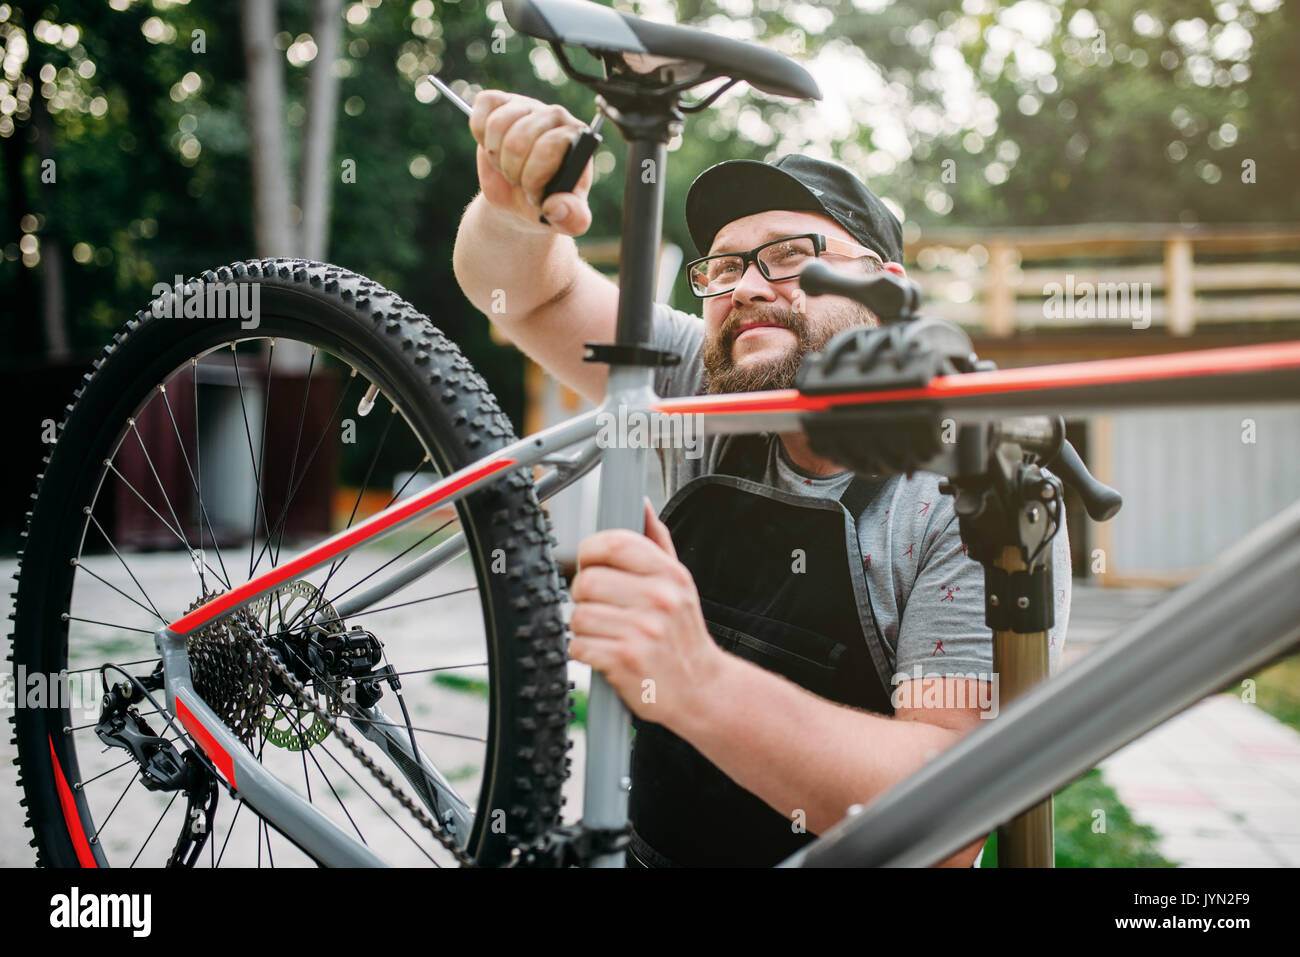 Bicycle mechanic adjusts with service tools bike seat. Cycle workshop outdoor. Bicycling sport, repairman at work - Stock Image